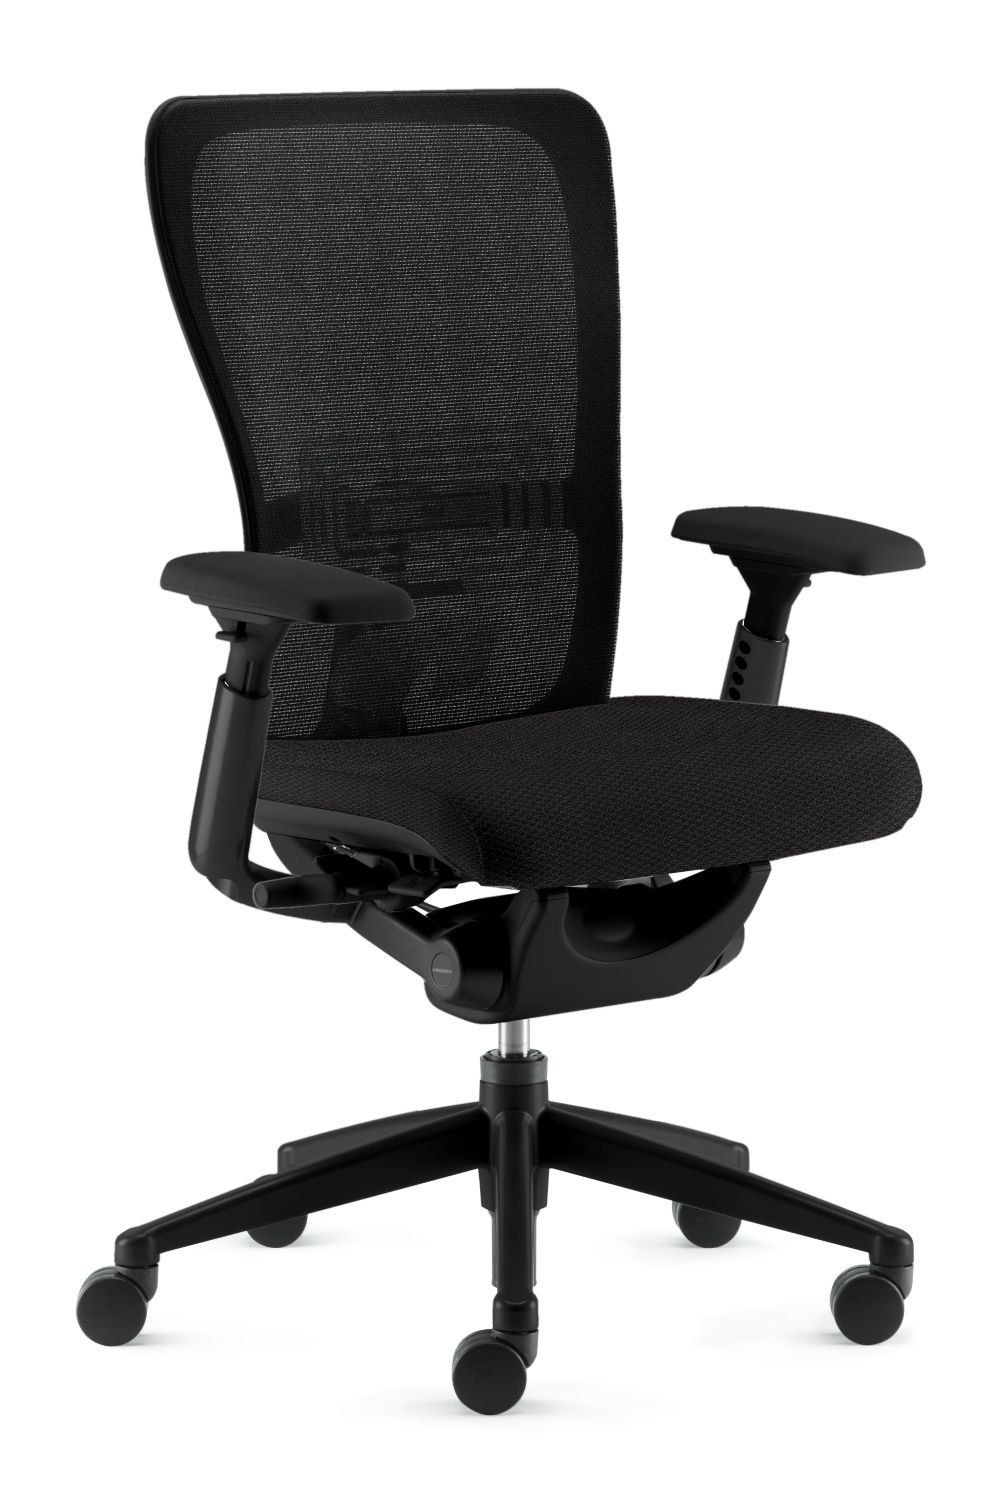 Haworth Zody Chair Lumbar Support 4 D Arms Best Office Chair